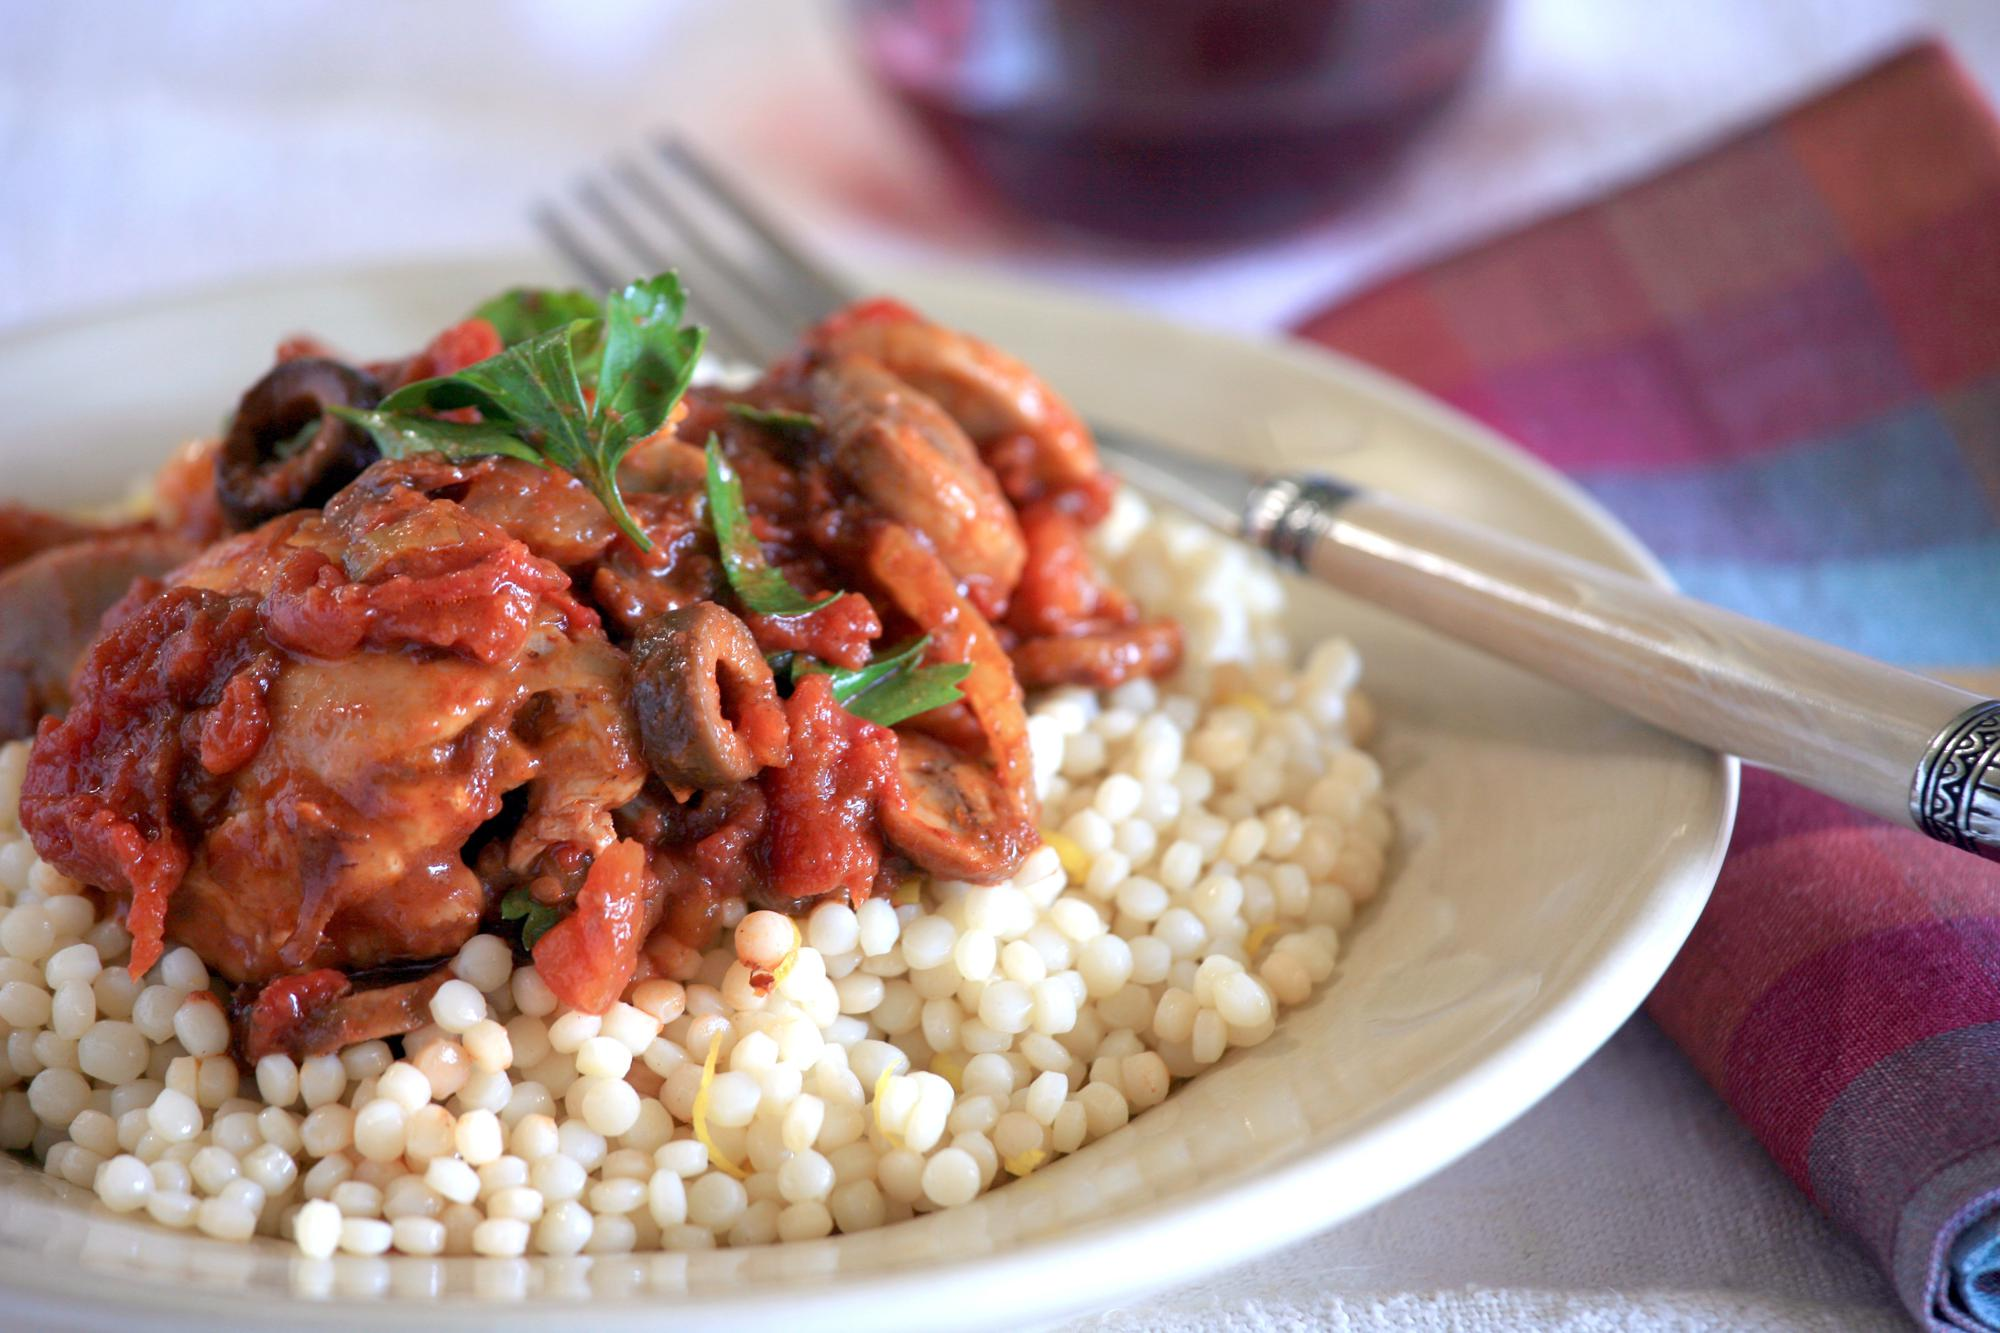 Tomato & Olive Braised Chicken with Couscous